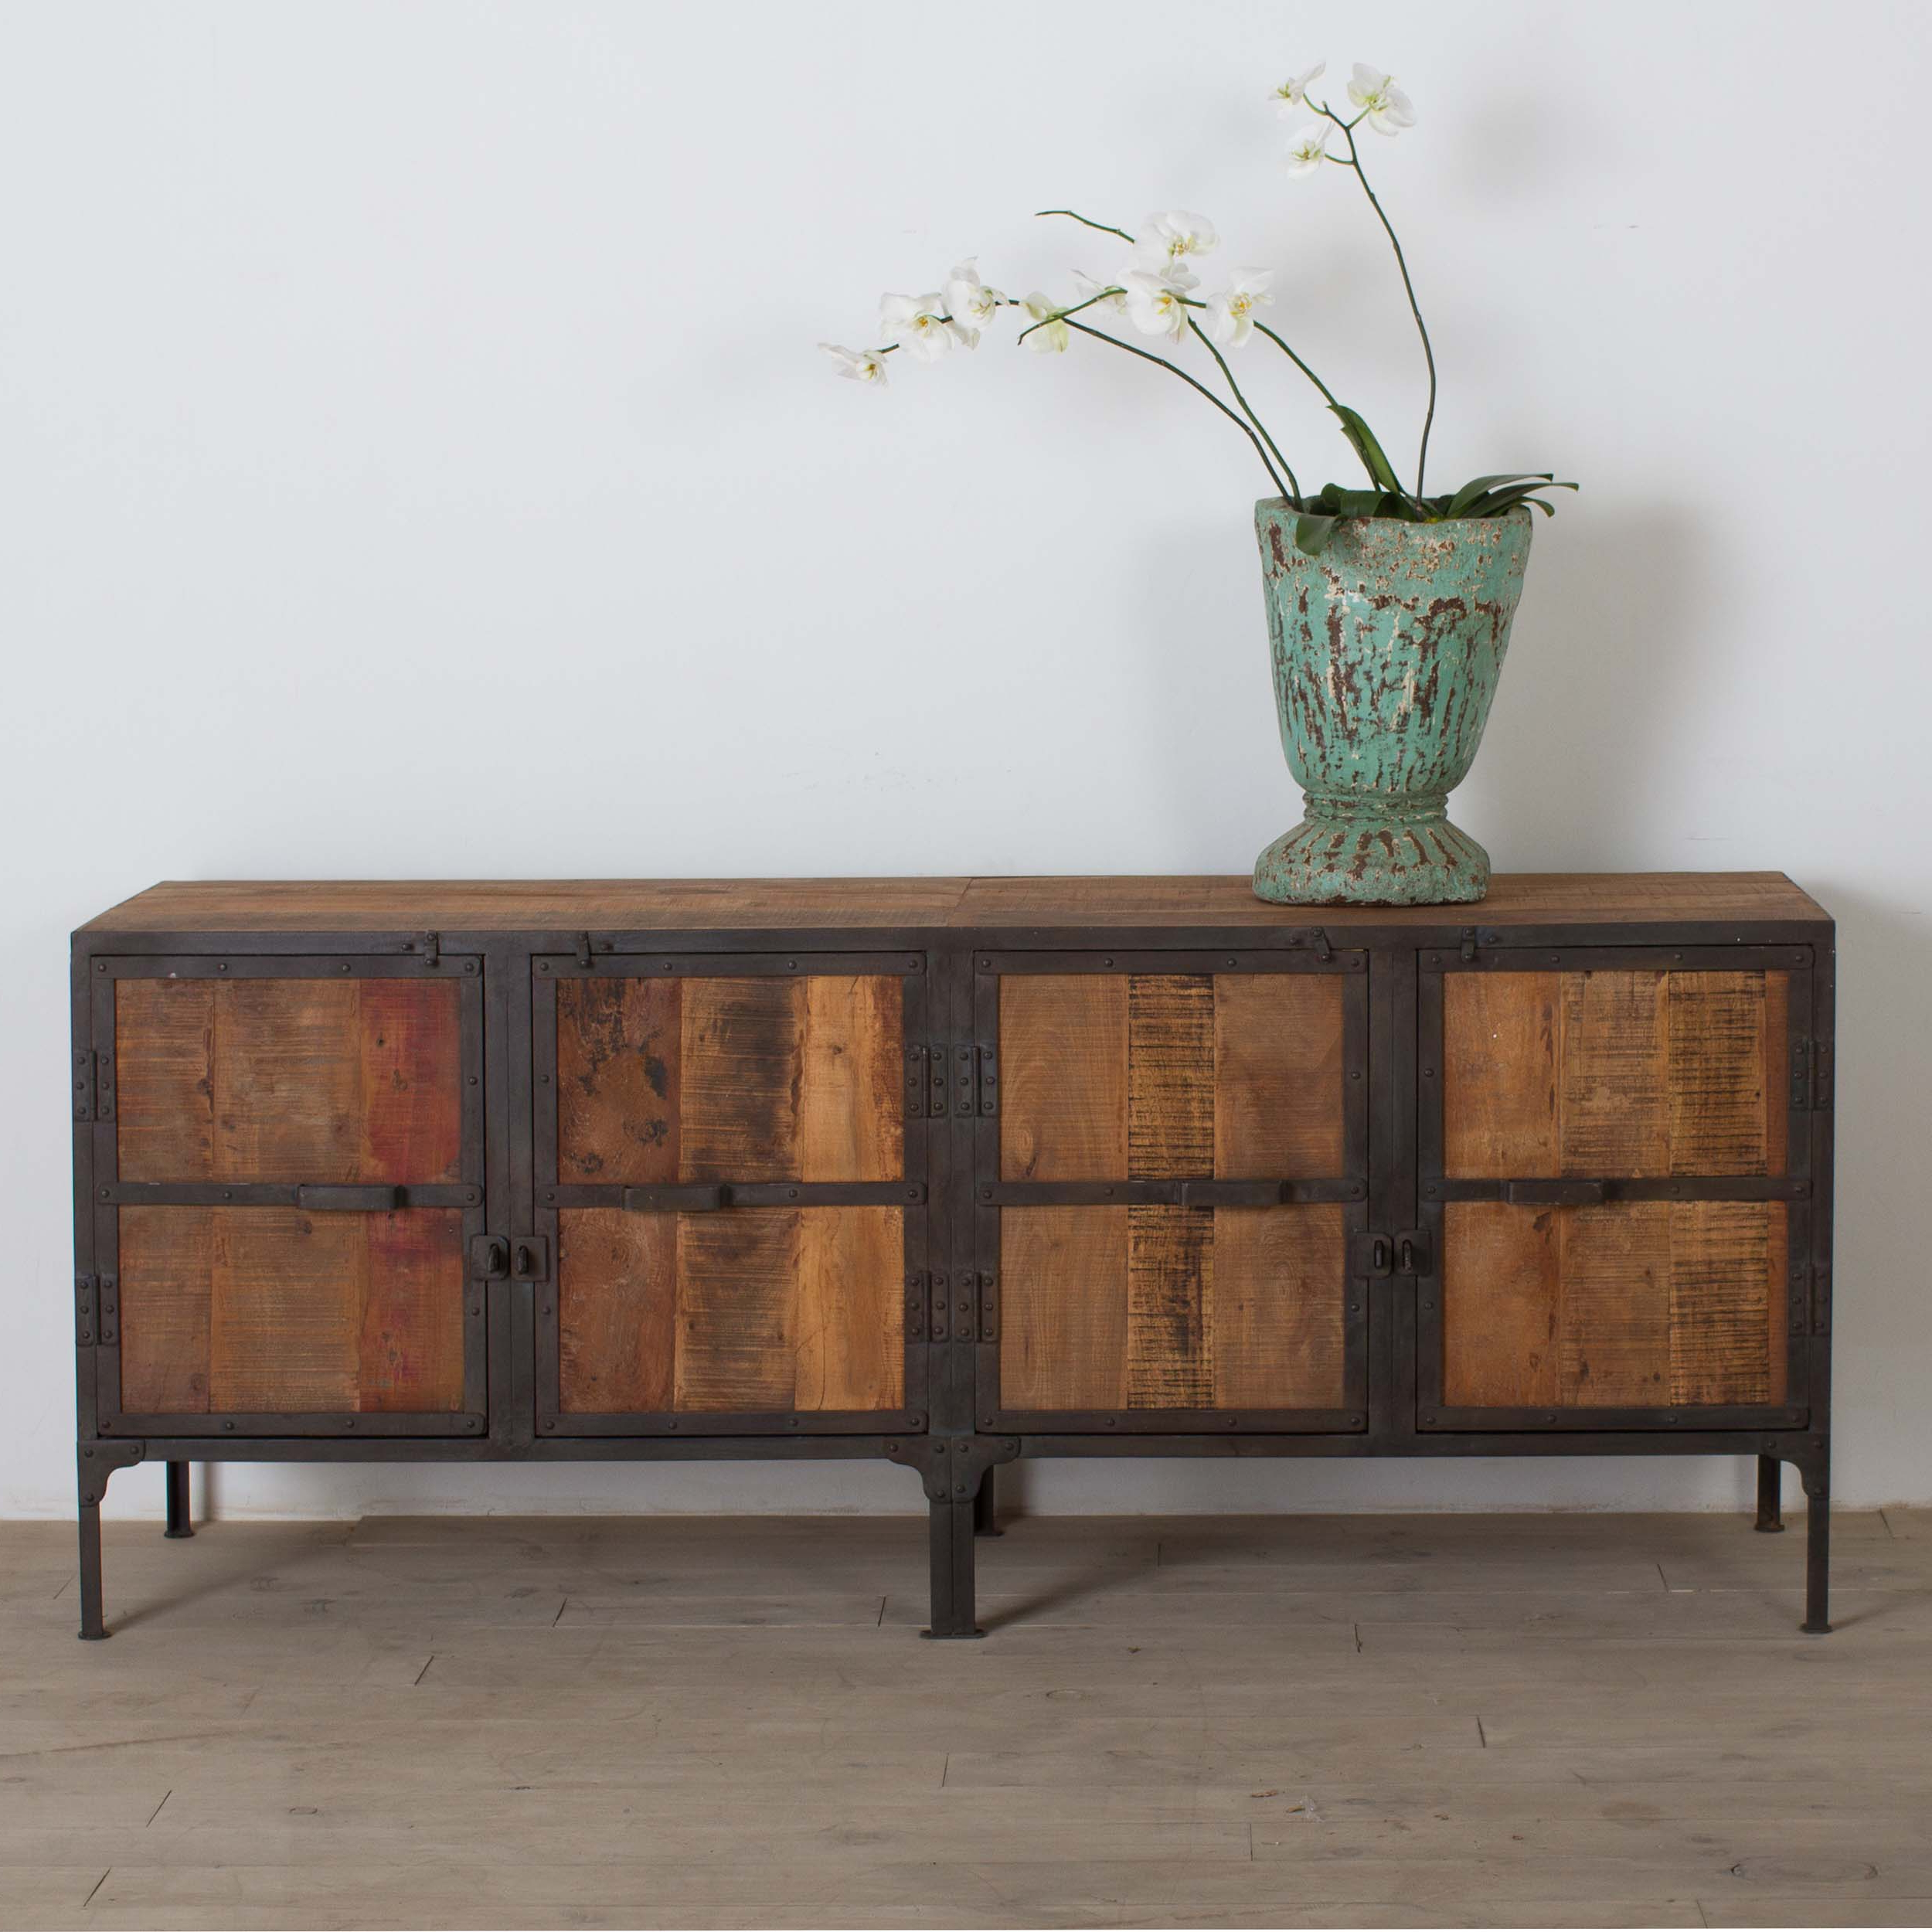 Favorite Metal Framed Reclaimed Wood Sideboards With Regard To Shop Handmade Cg Sparks Handmade Hyderabad Reclaimed Wood And Metal (Gallery 1 of 20)